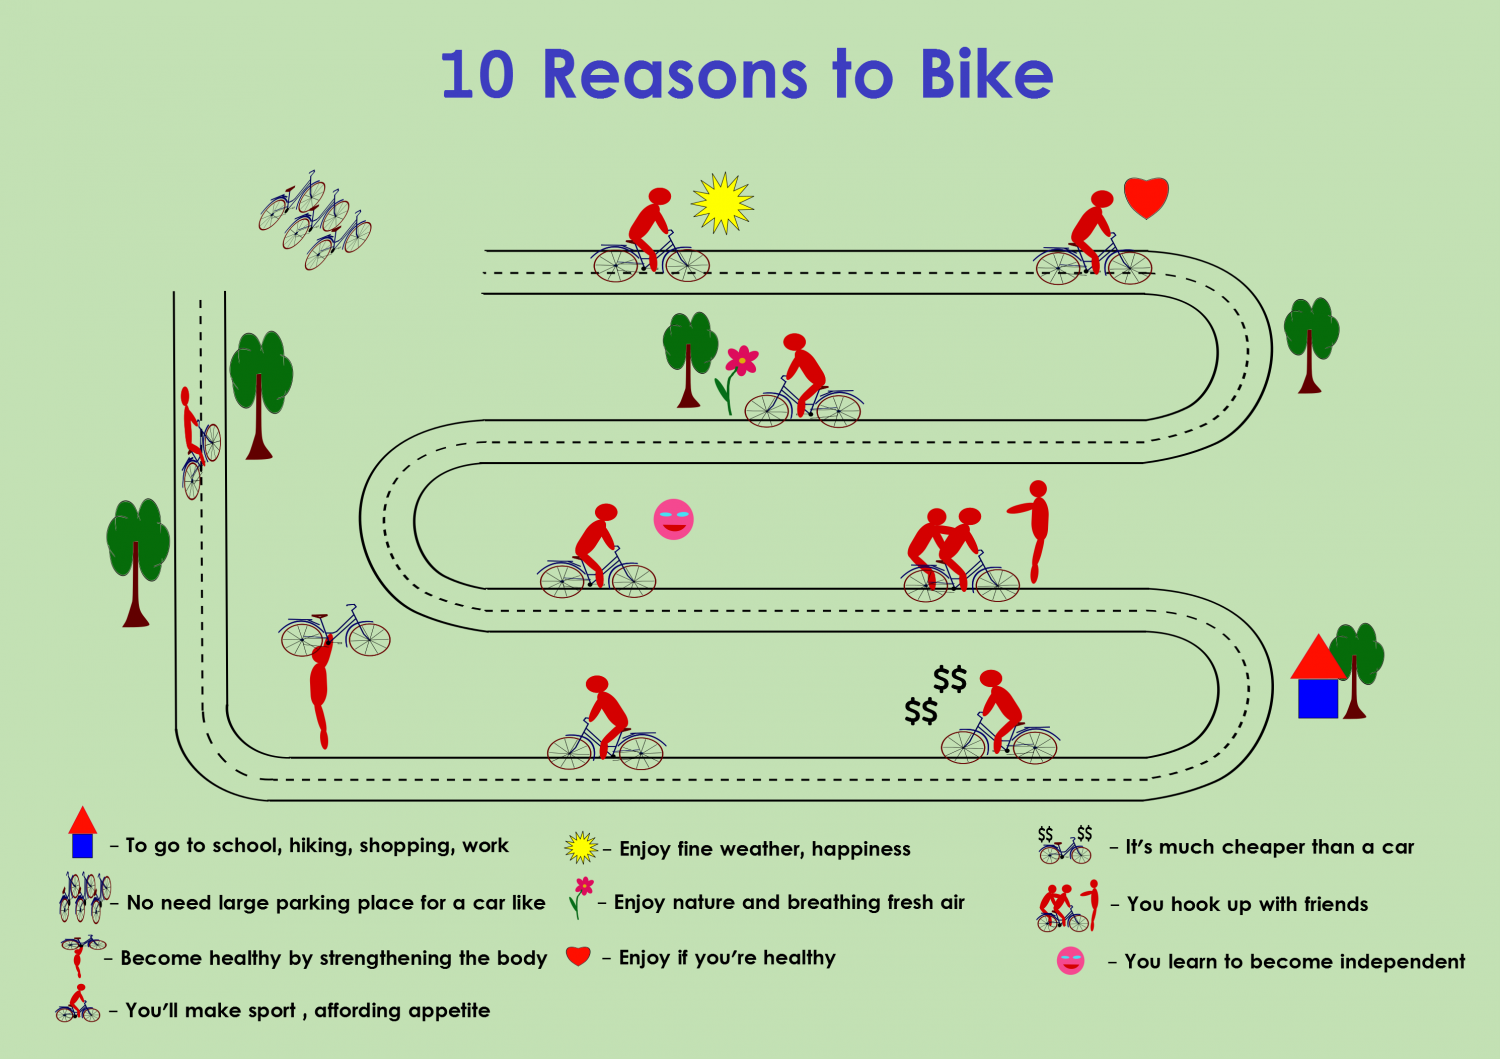 10  Reasons to Bike Infographic